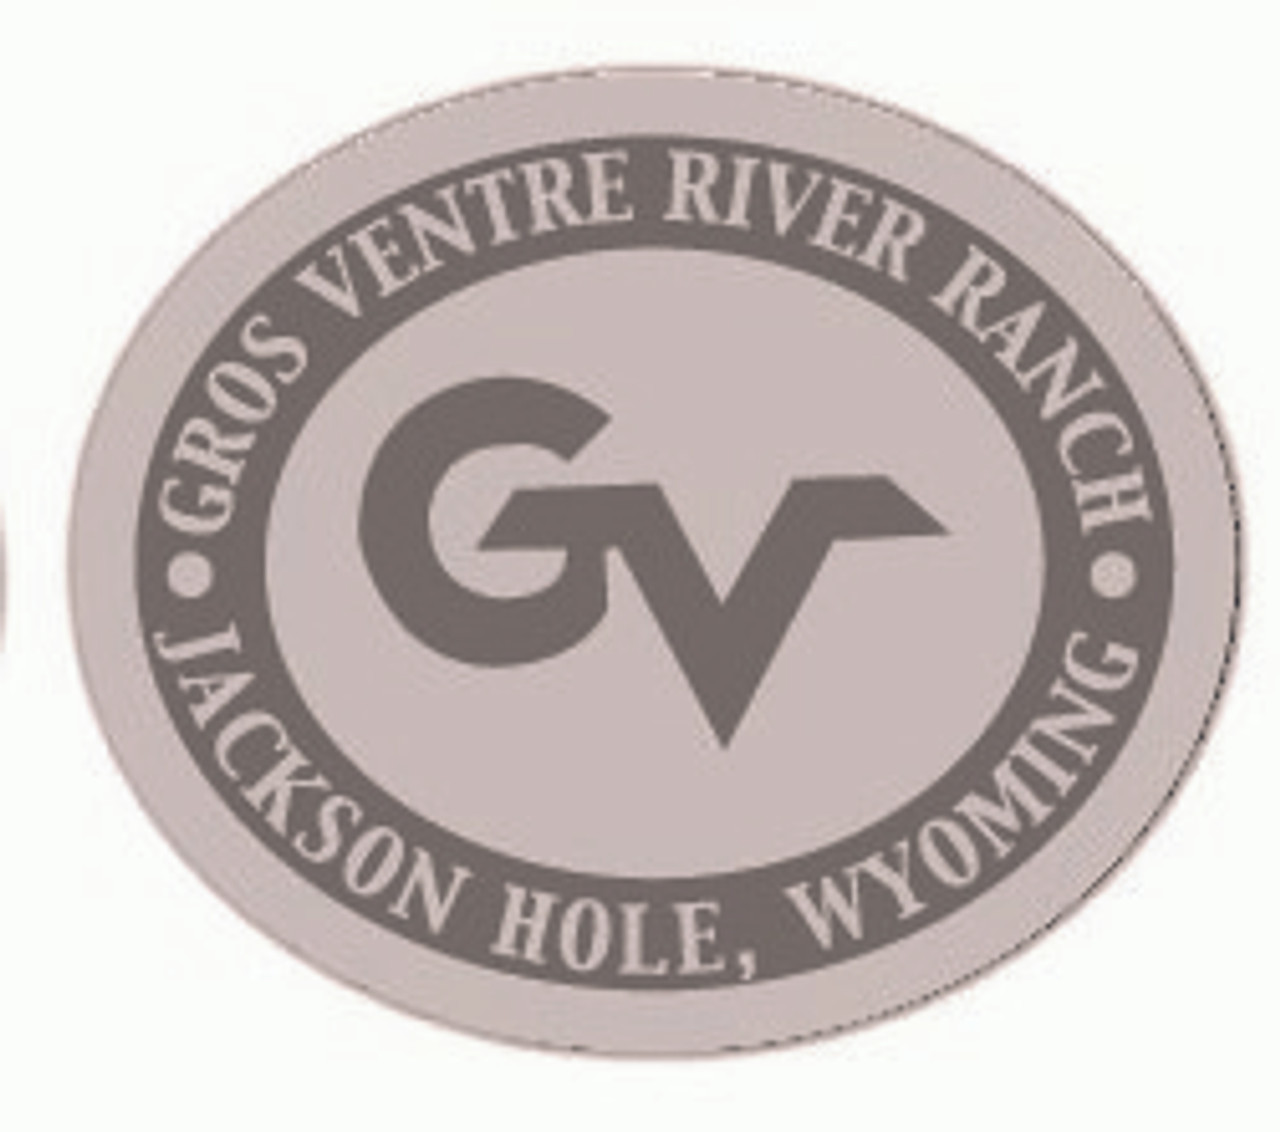 Gros Ventre River Ranch #2 Buckle (RESTRICTED)